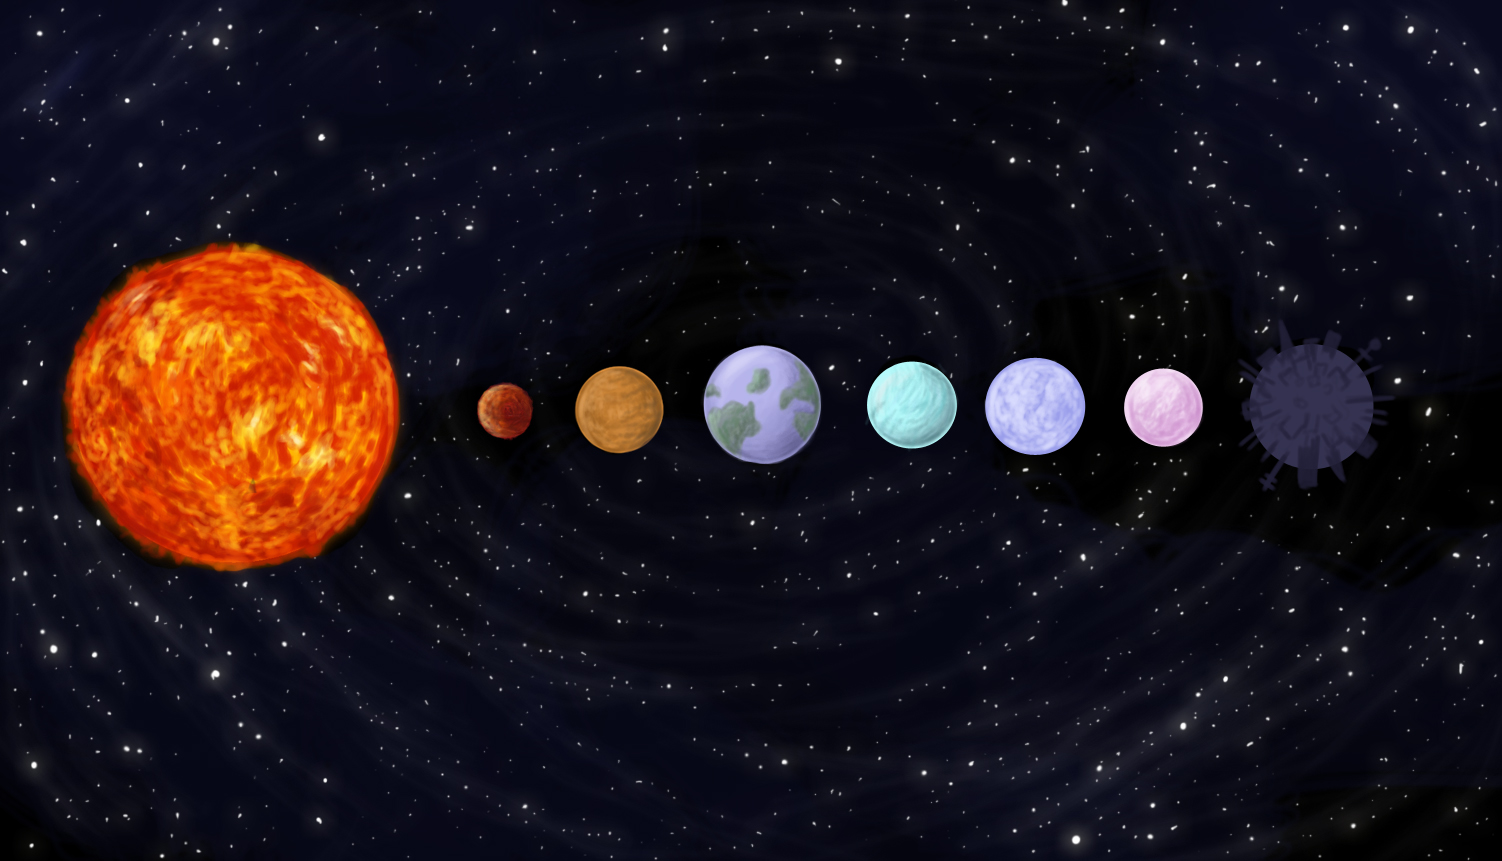 planets in the solar system project - photo #22